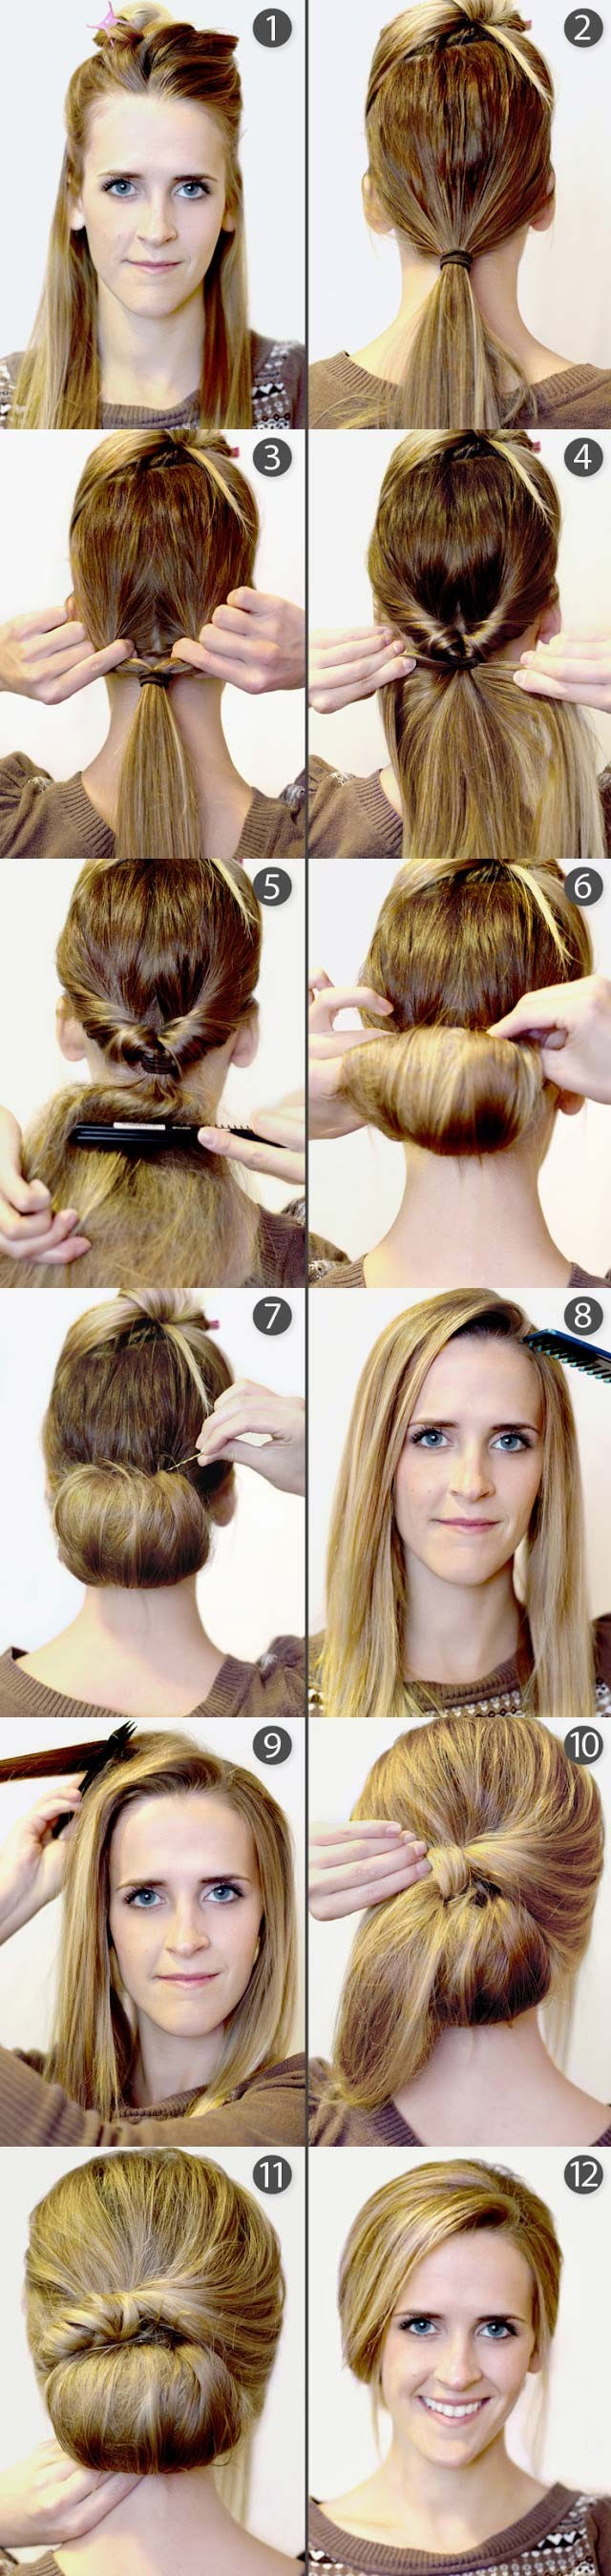 Vintage Updo Hairstyle Tutorial